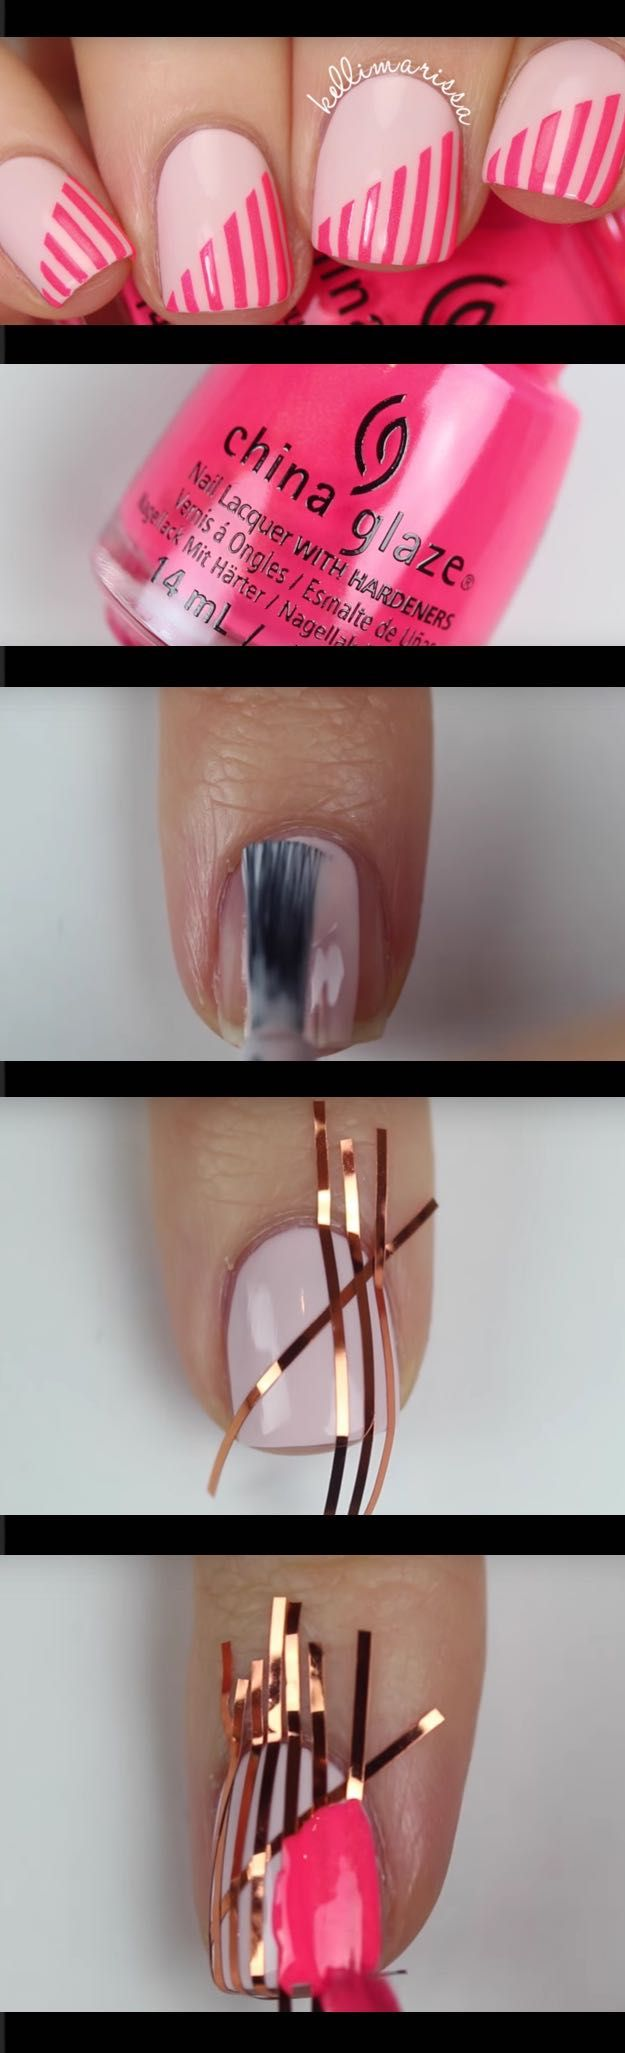 41 Super Easy Nail Art Ideas for Beginners | Nagelschere ...